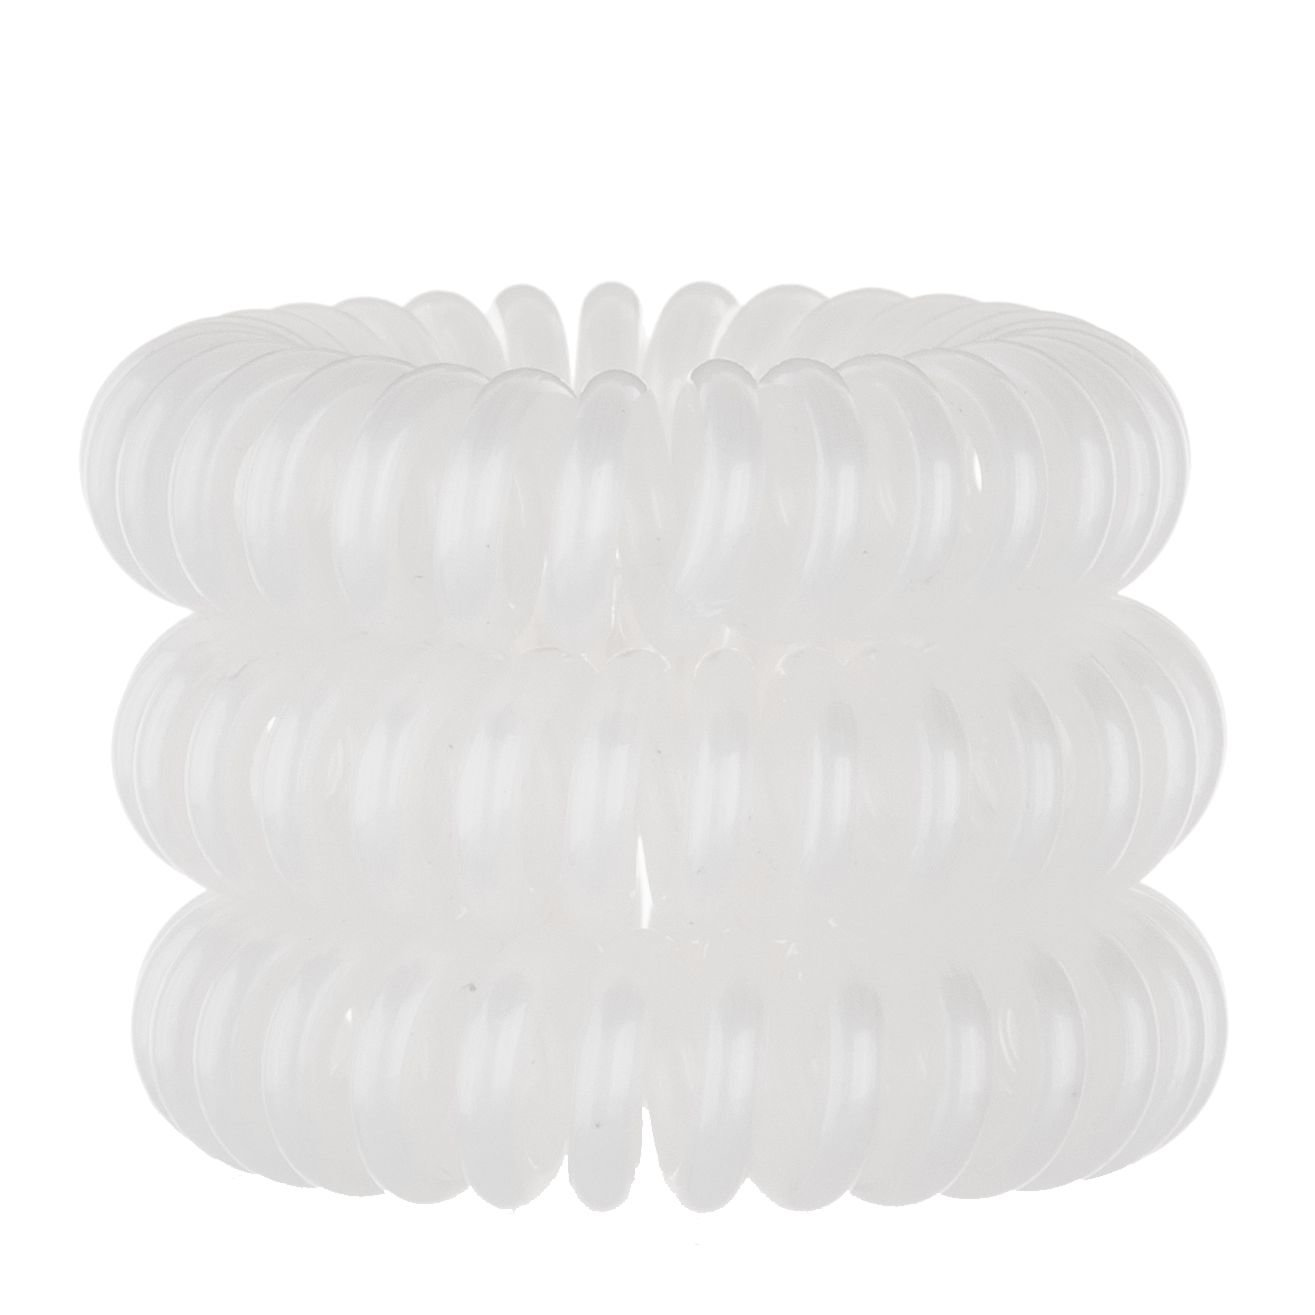 Invisibobble Hair Ring Cosmetic 3pcs White